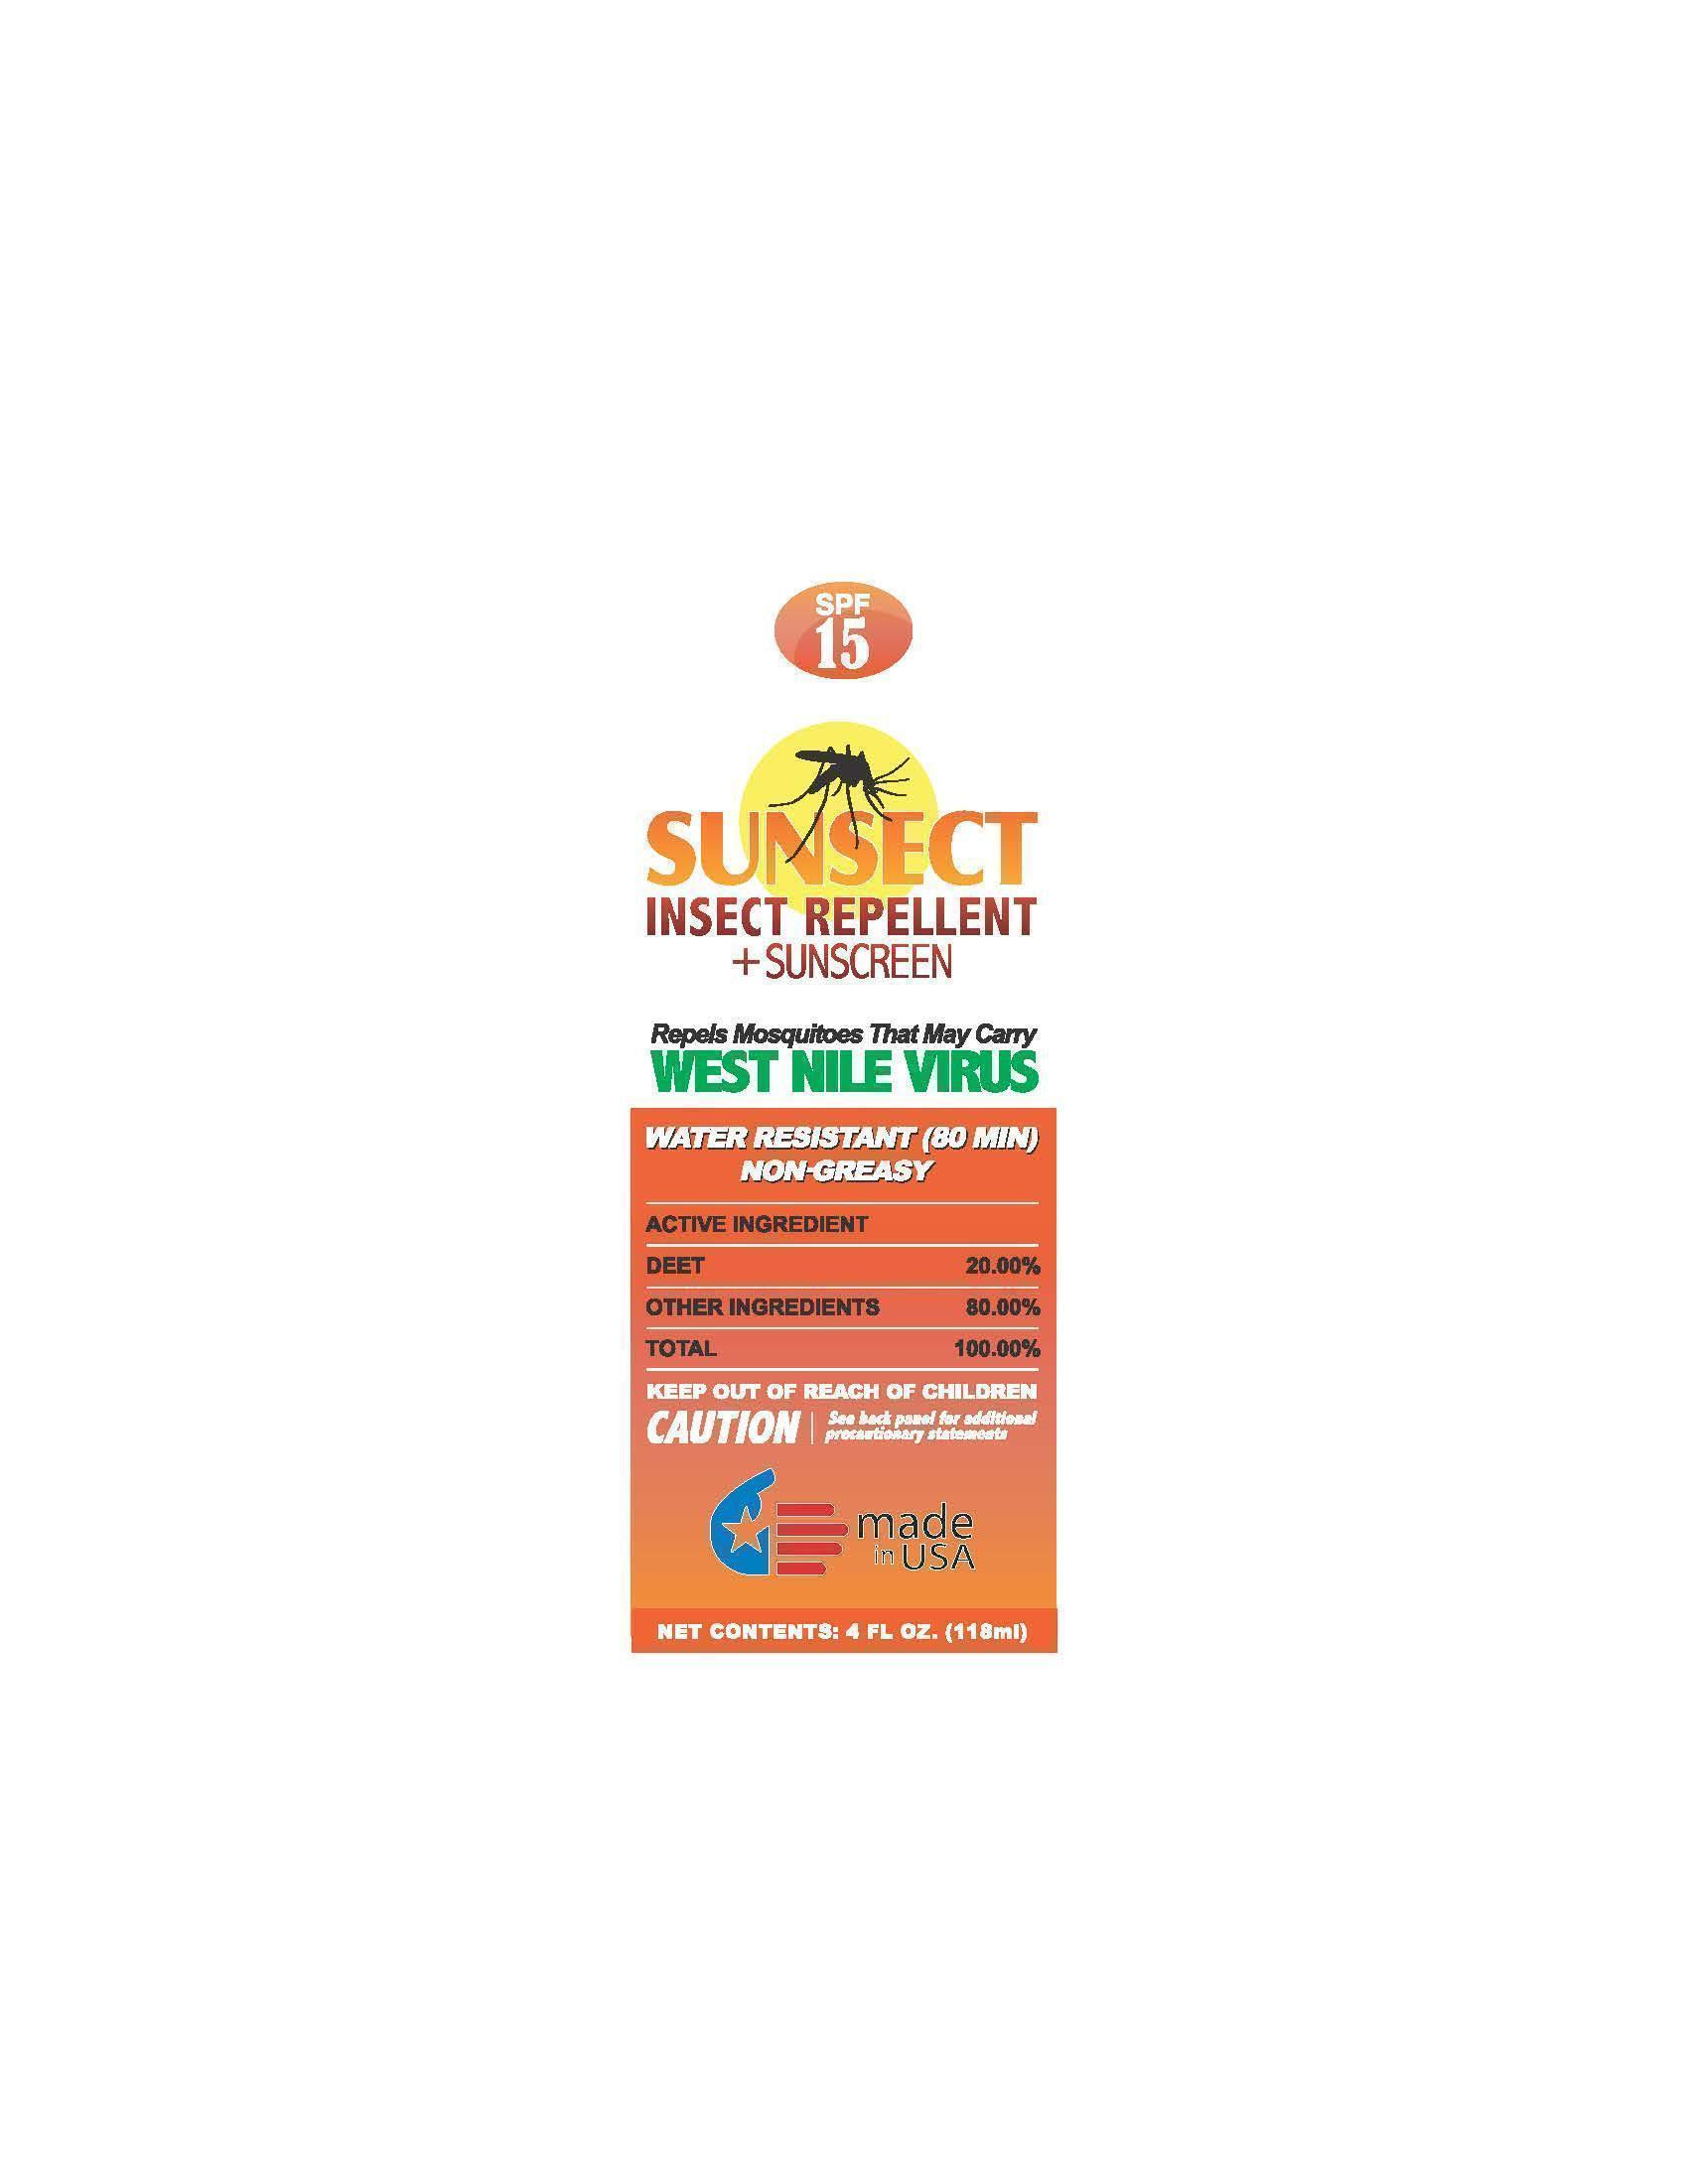 Sunsect Insect Repellent Sunscreen   Octinoxate, Oxybenzone, Octisalate Lotion safe for breastfeeding